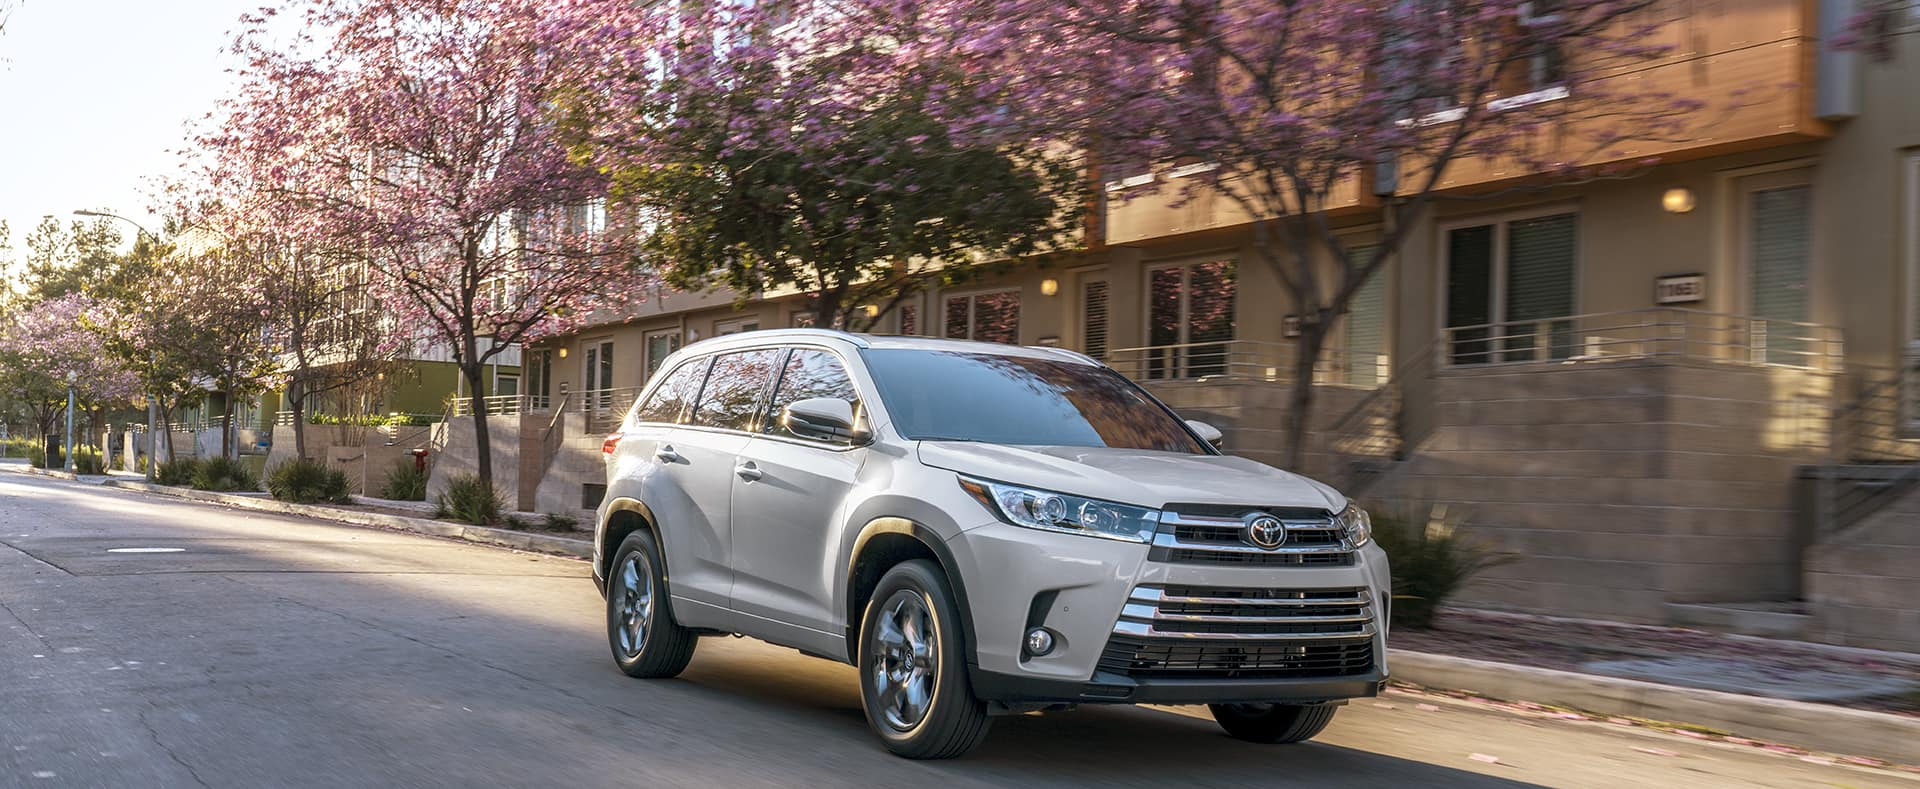 Introducing the All-New 2019 Toyota Highlander | Lancaster